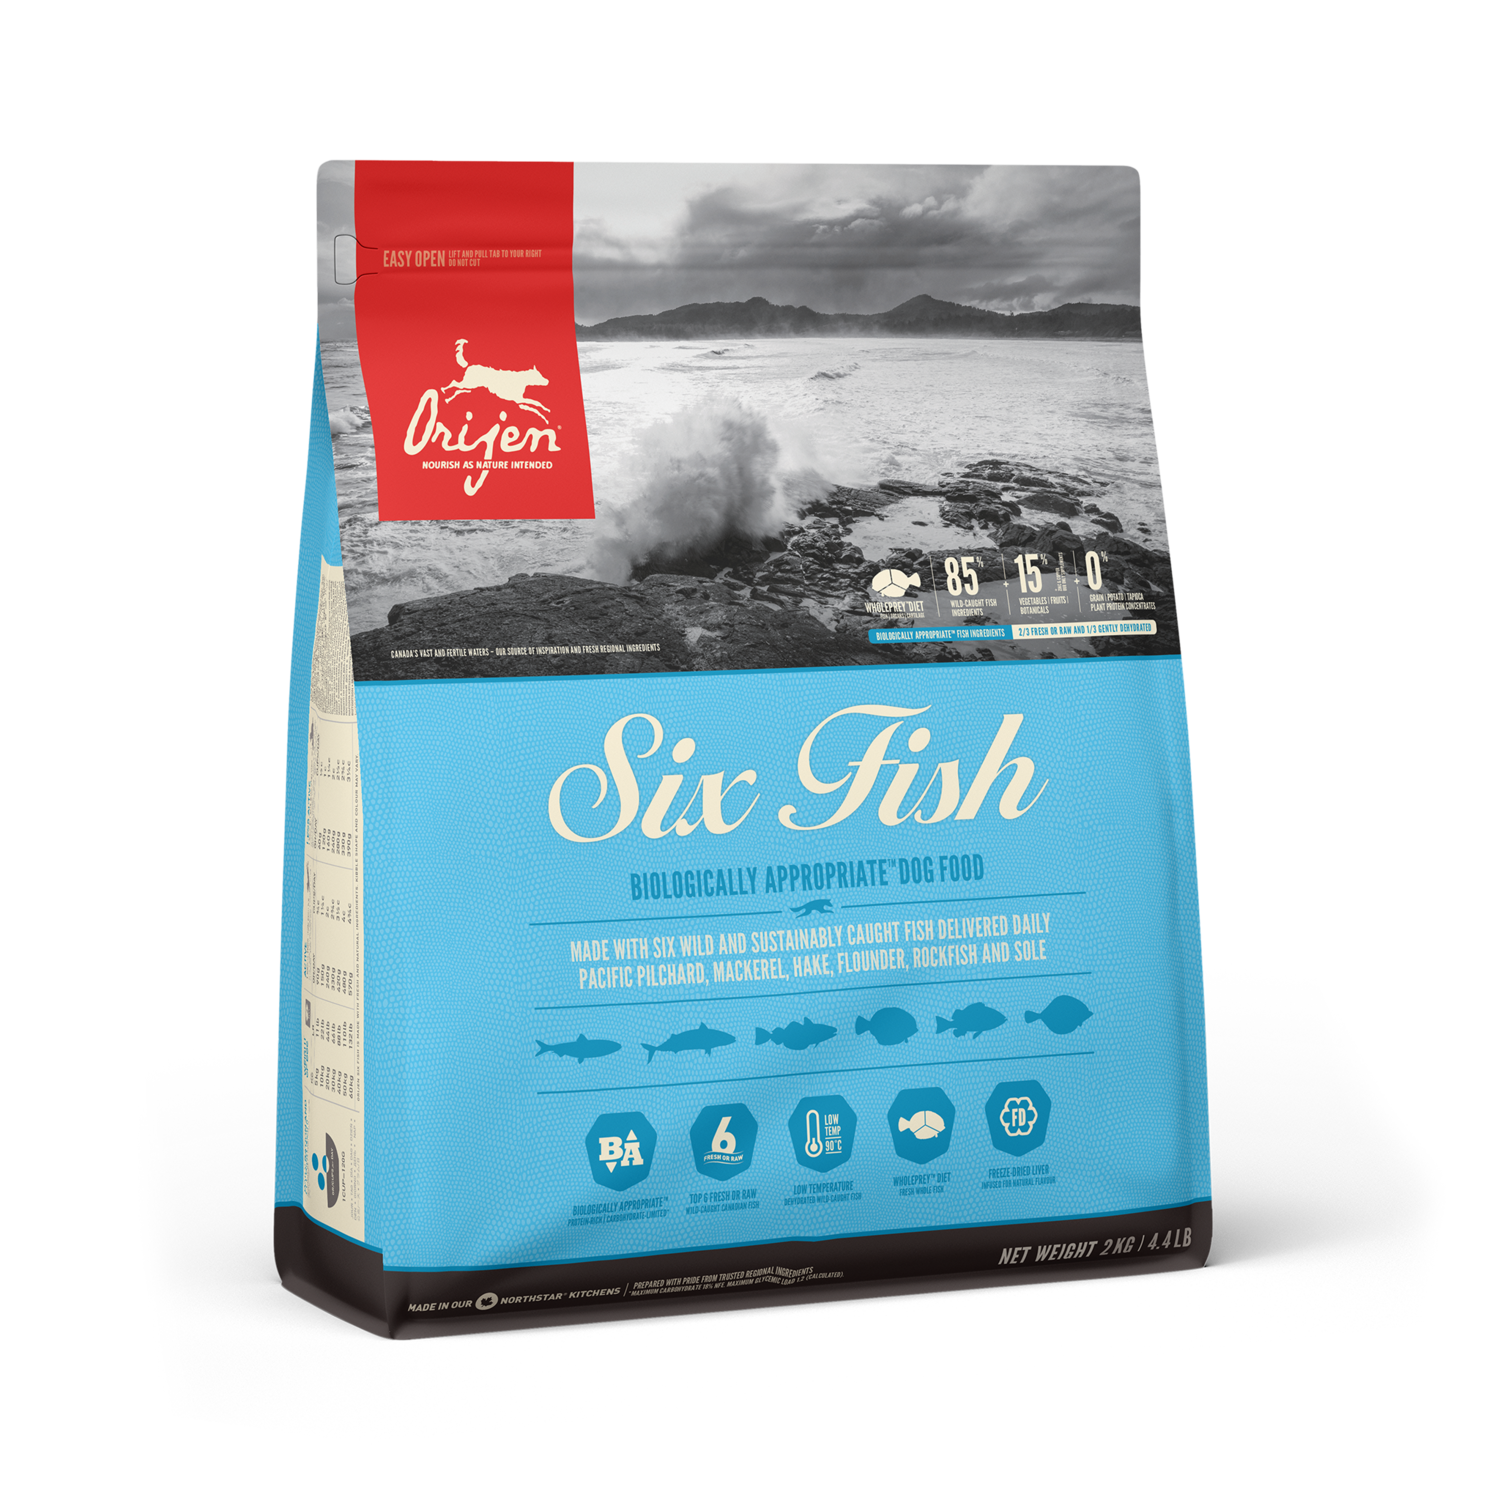 ORIJEN DOG SIX FISH 2KG.